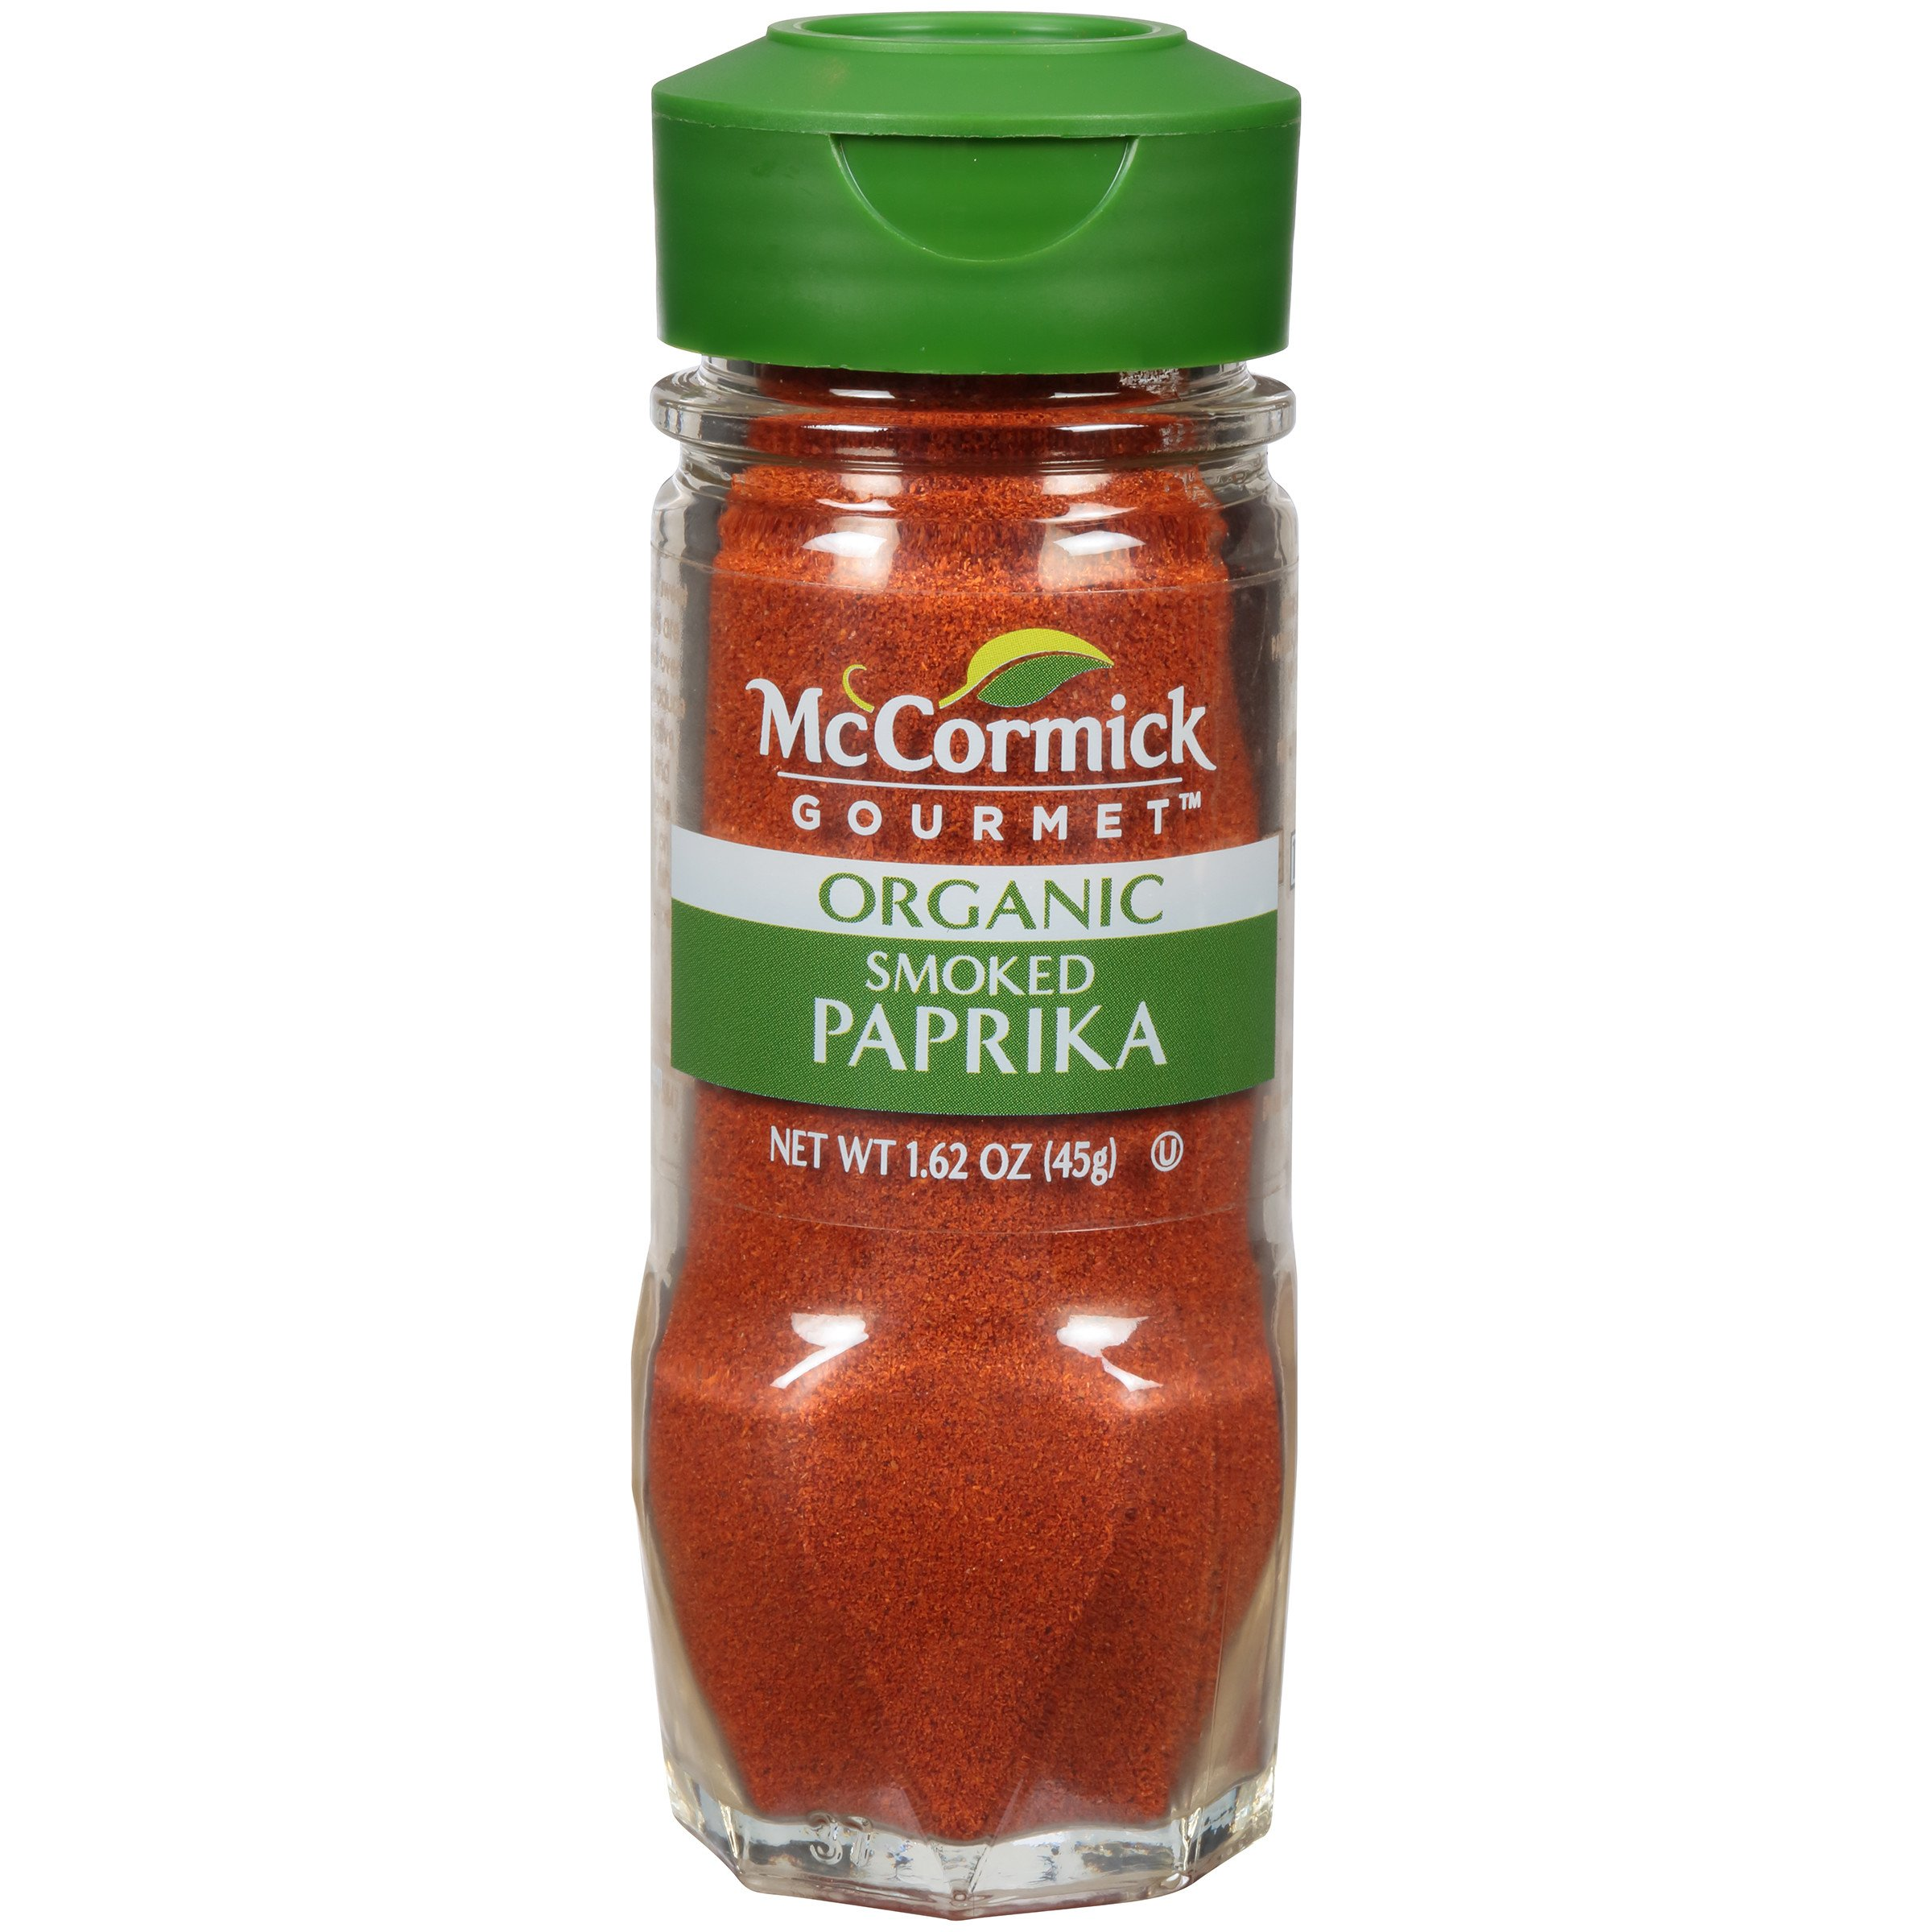 McCormick Gourmet Smoked Paprika, 1.62 oz (Case of 36) by McCormick